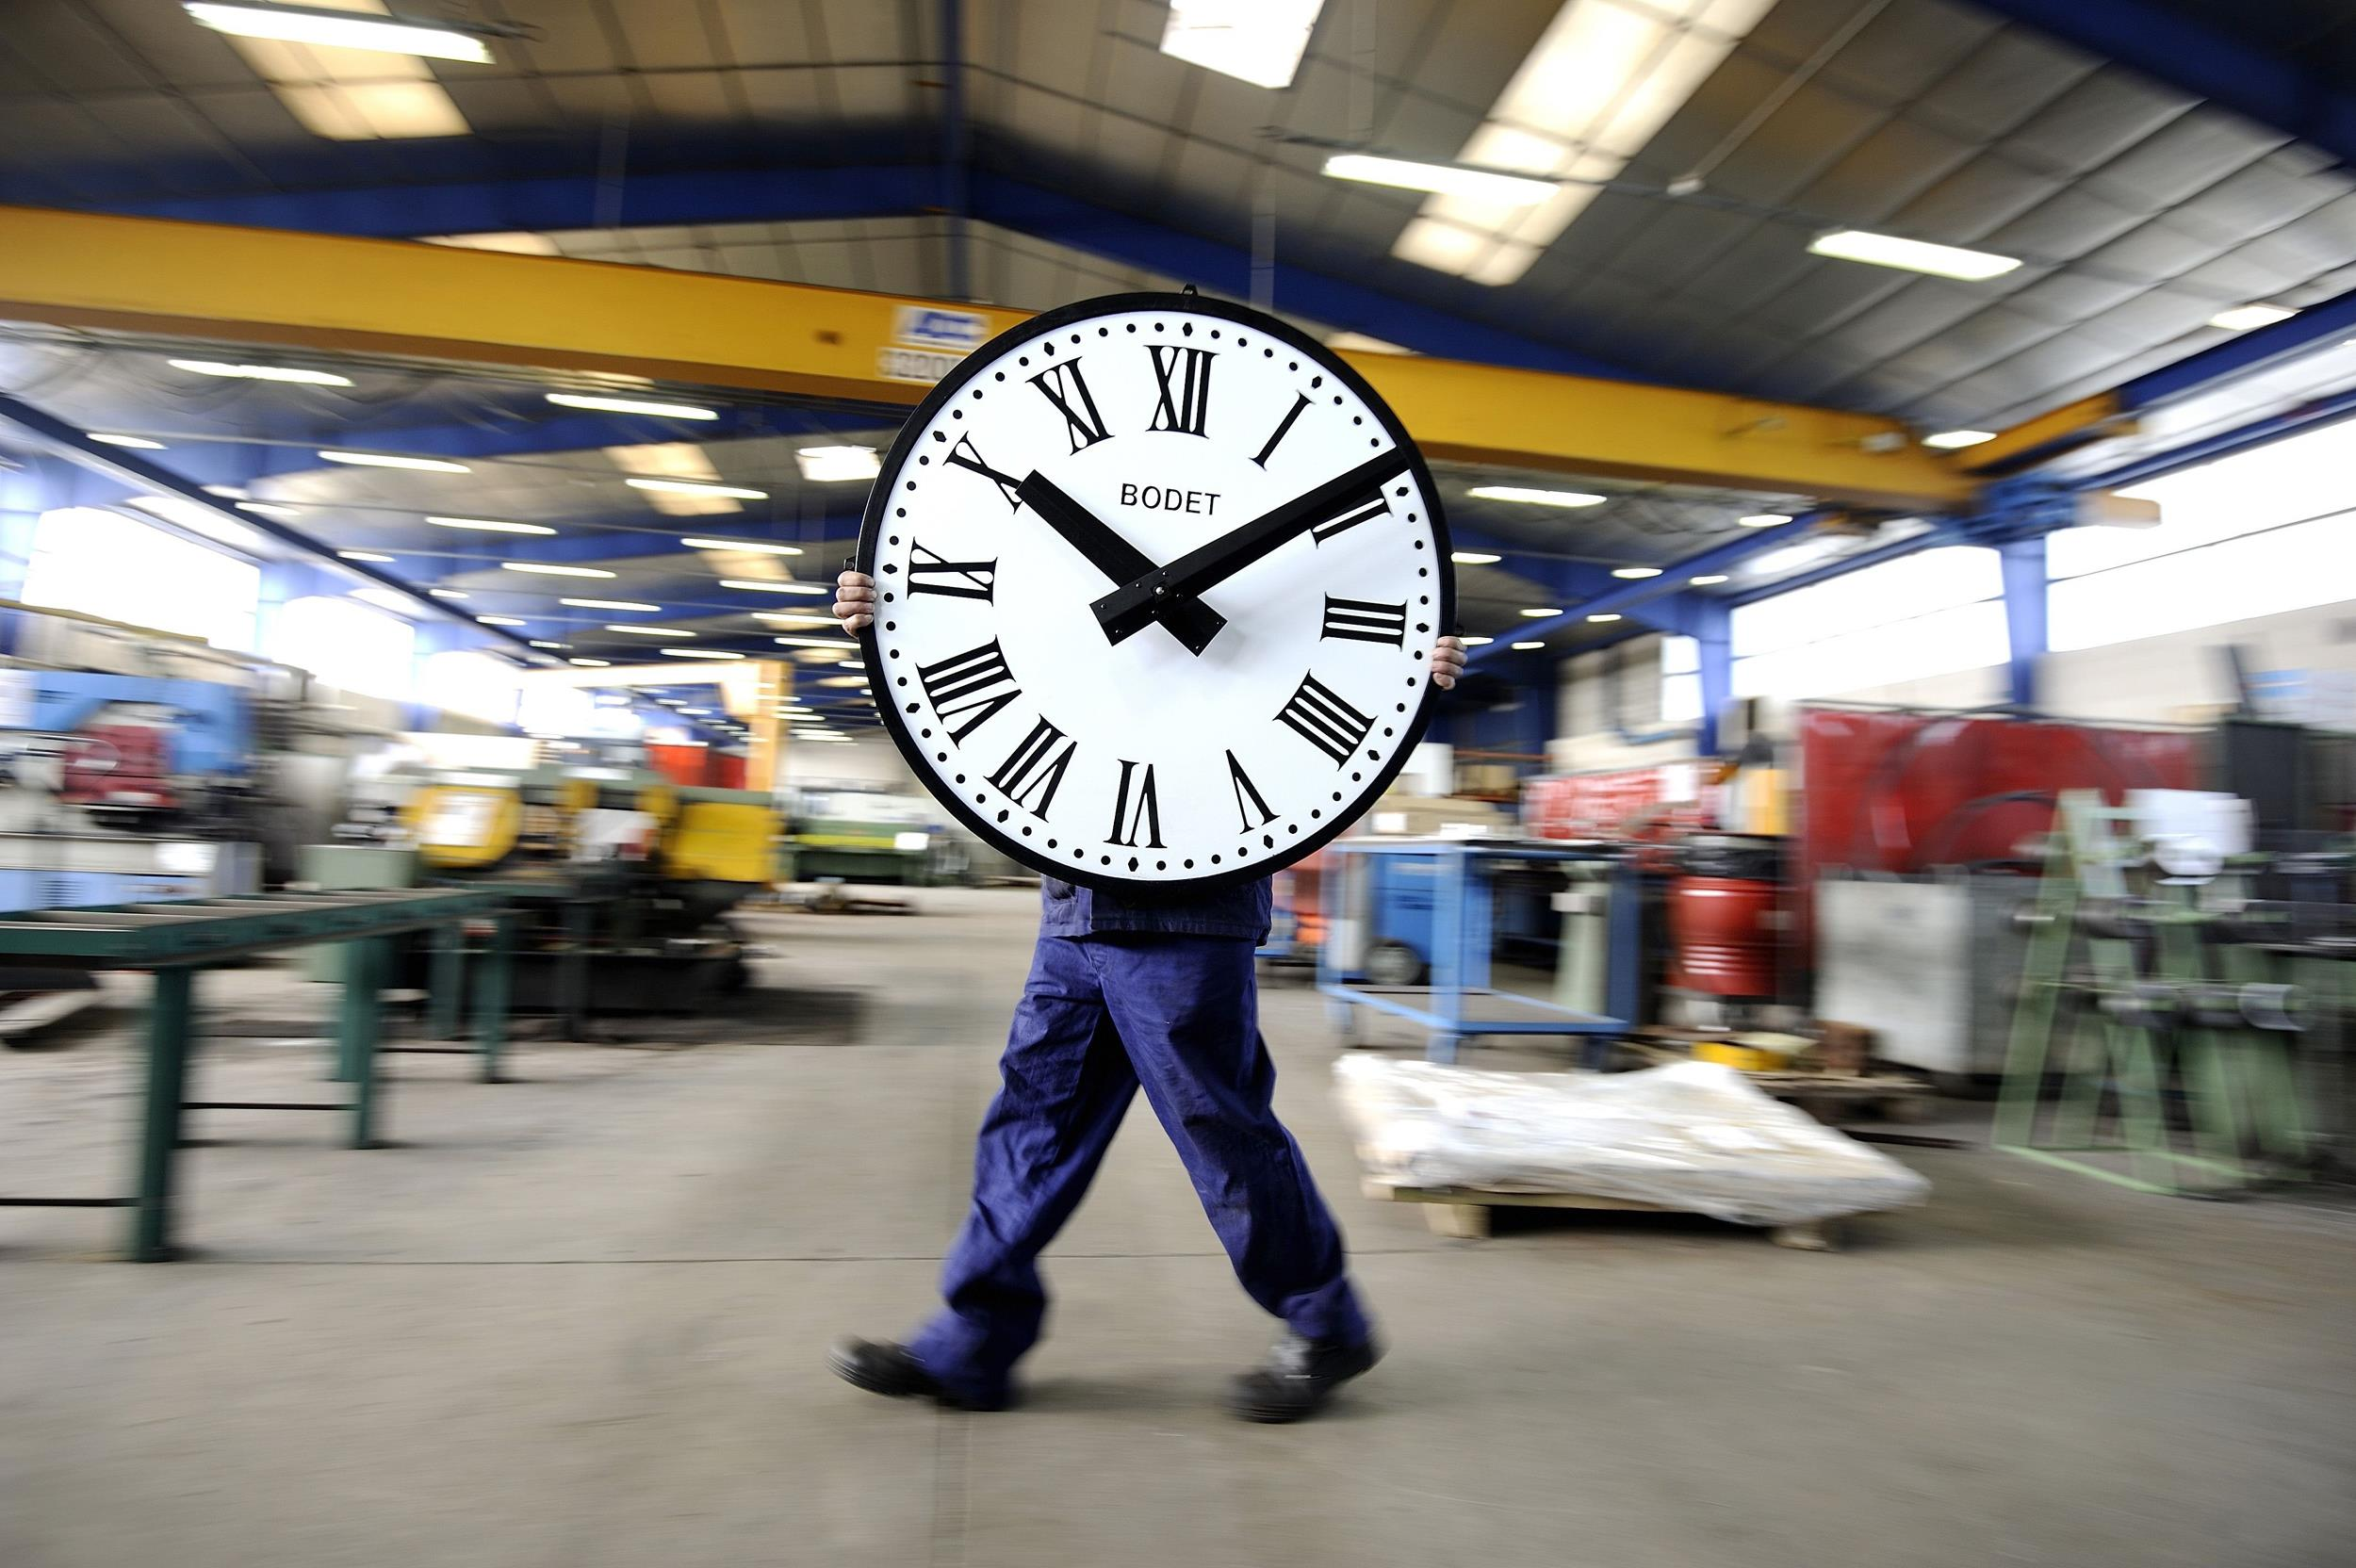 Image: An employee of the Bodet Company carries a clock